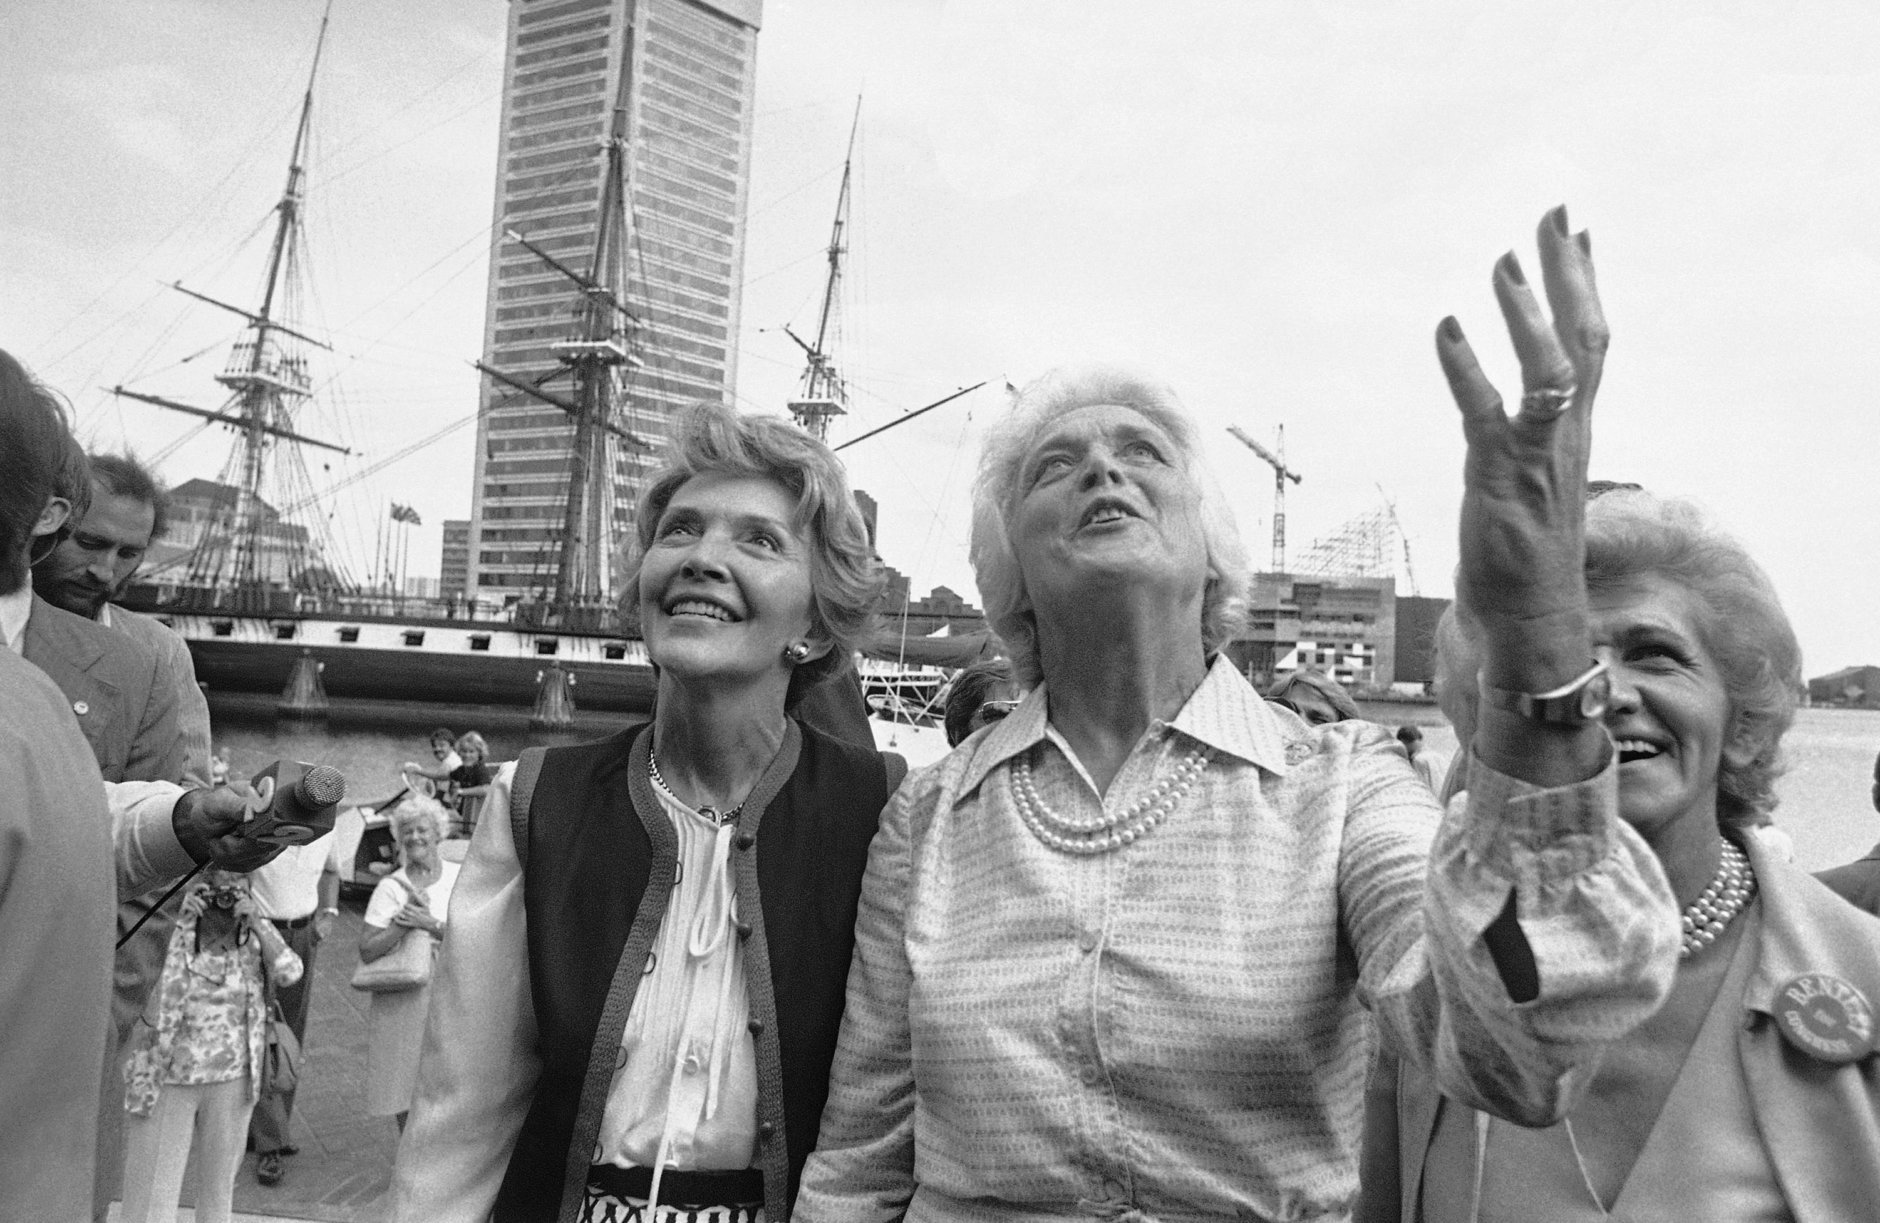 Nancy Reagan, left and Barbara Bush, right, wives of the GOP nominees for President and Vice President, plead to a crowd lining a balcony for their votes in this November's general election on Sept. 15, 1980 in Baltimore, Md.     The wives toured the Baltimore Inner Harbor while campaigning for their husbands. (AP Photo/William Smith)